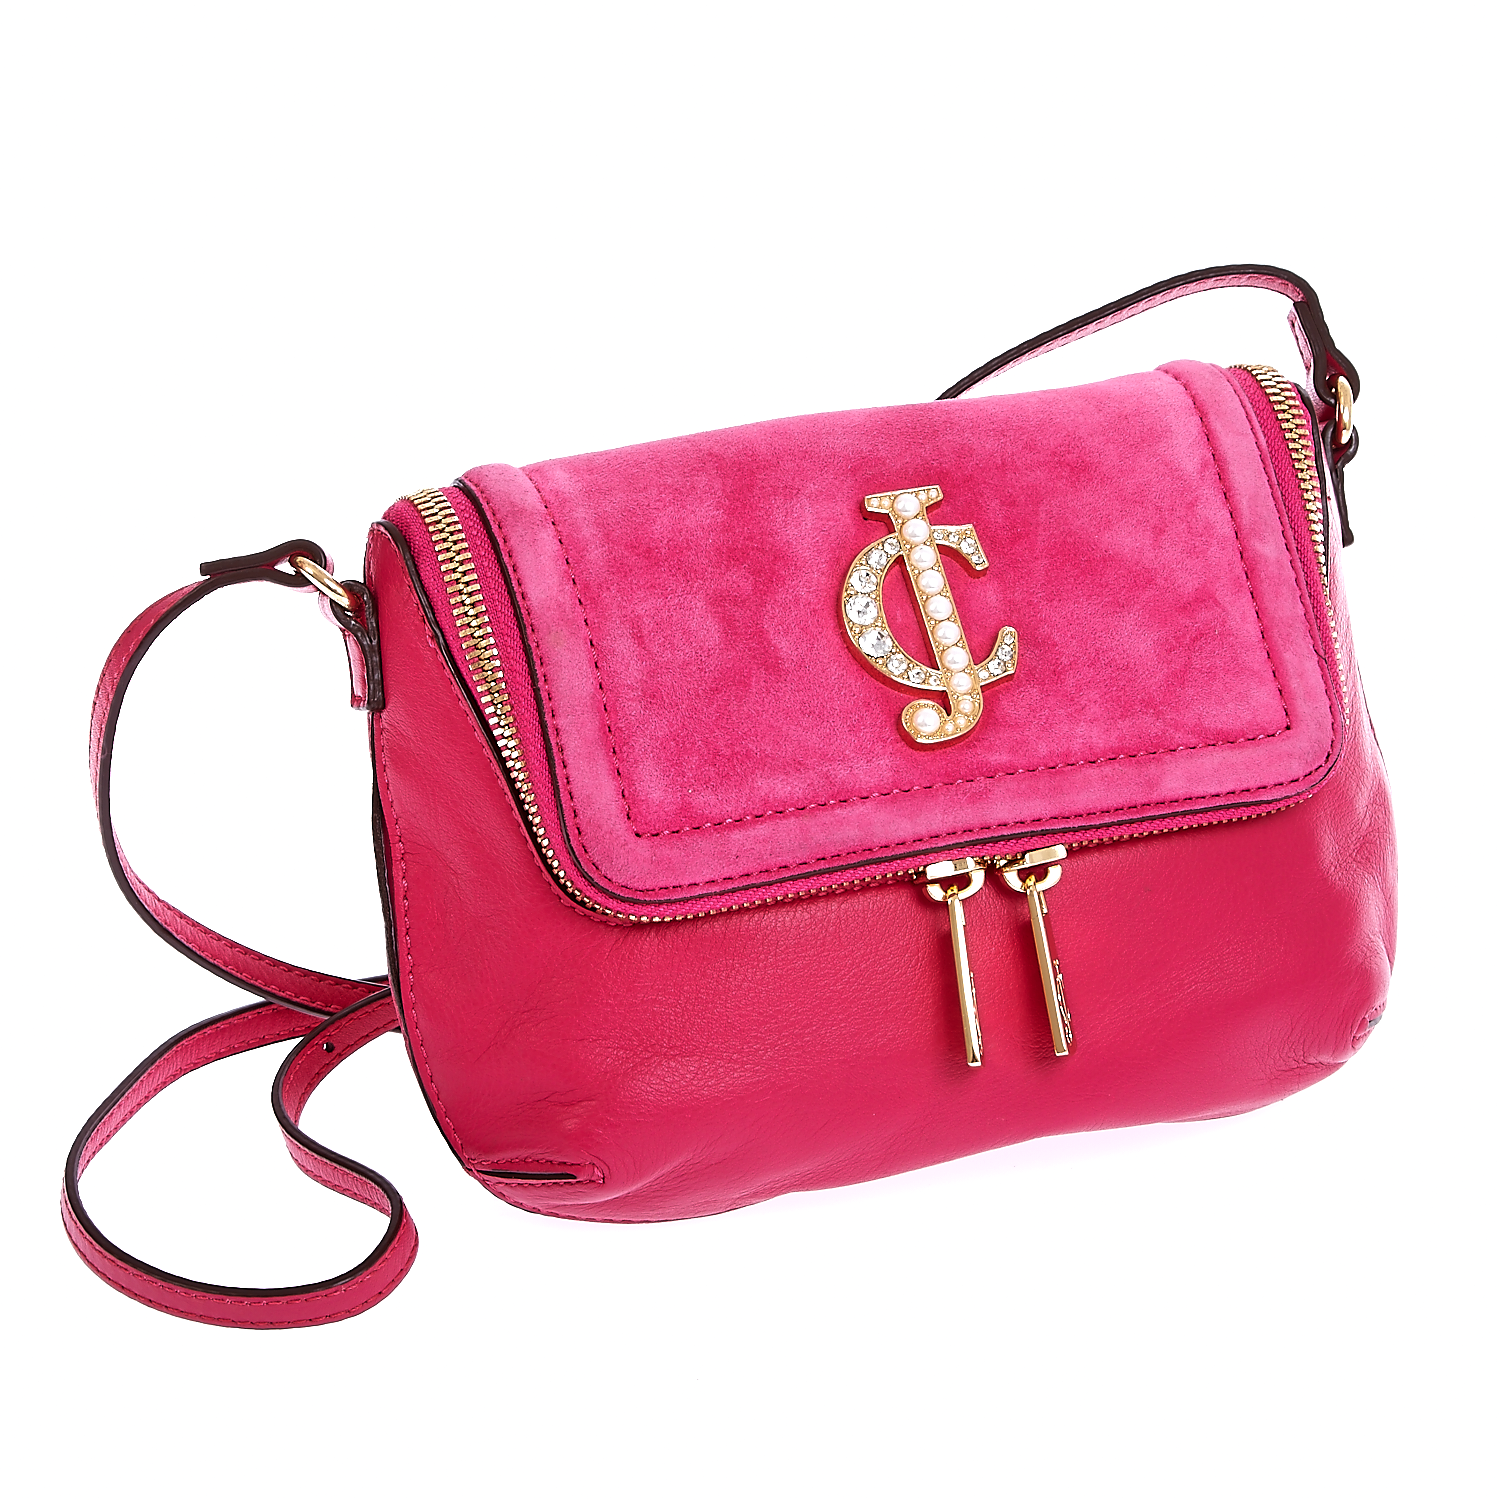 JUICY COUTURE – Τσάντα Juicy Couture φούξια 1409482.0-00P6